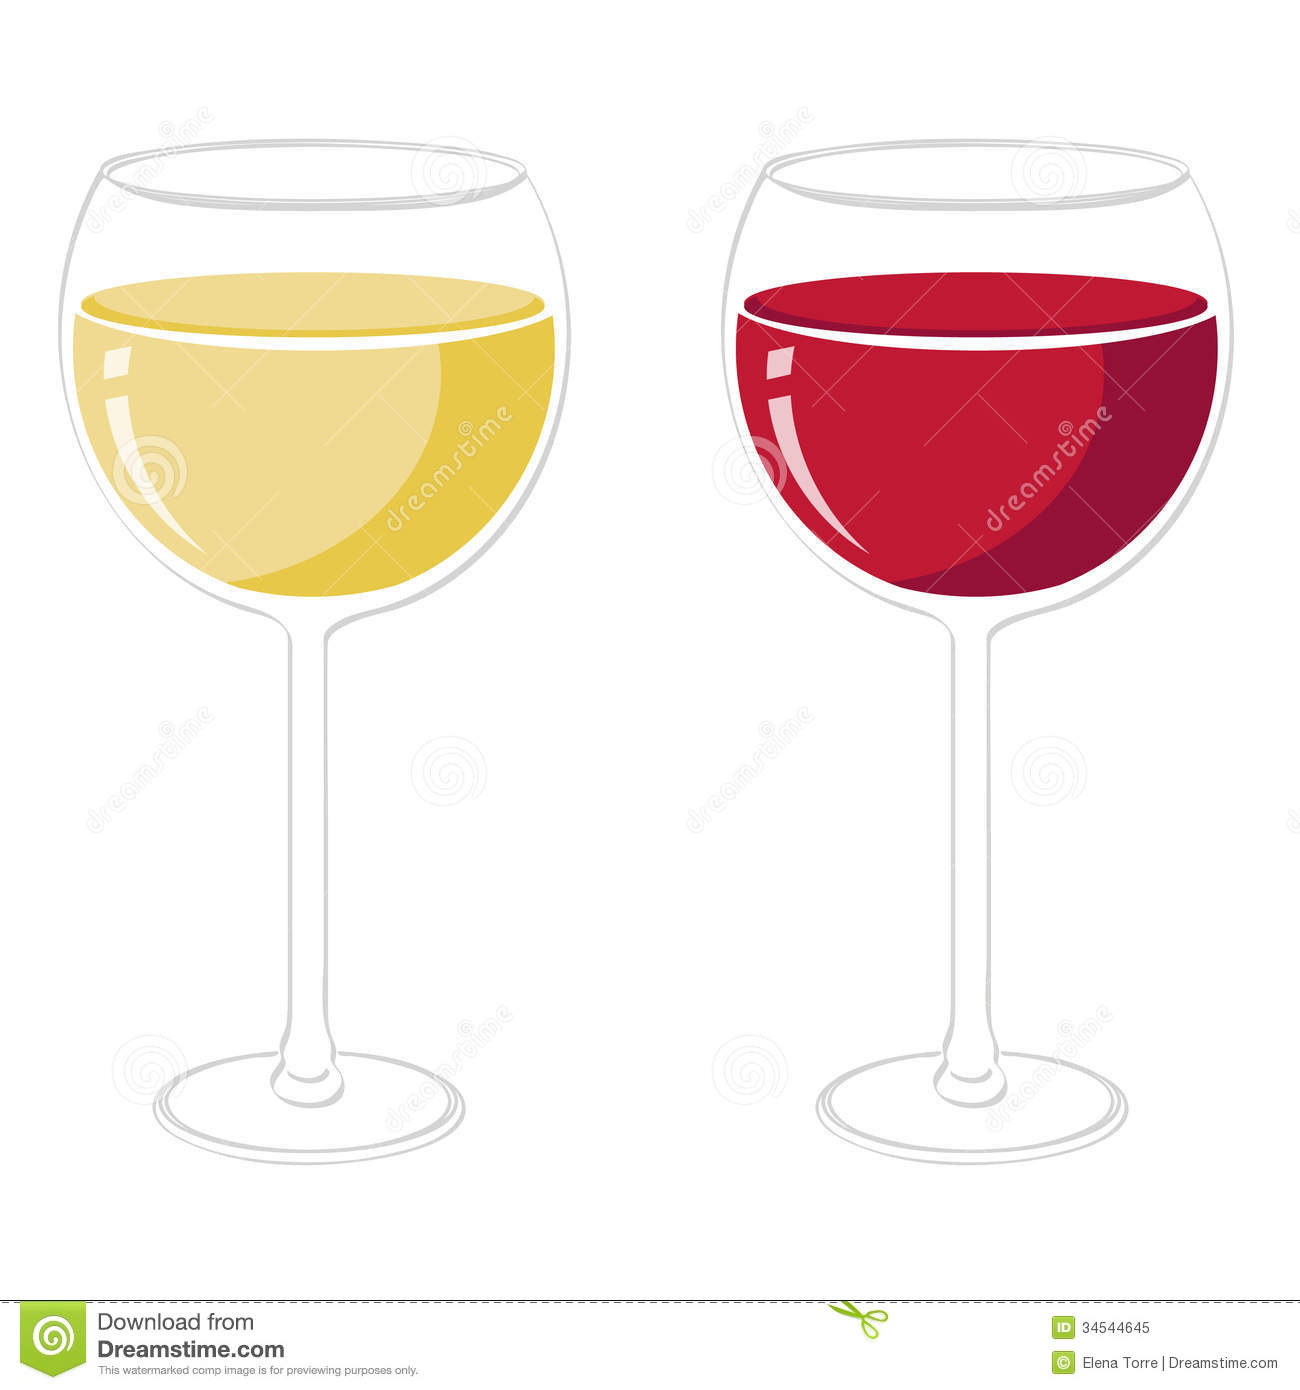 Illustration of red and white wine glasses isolated + vector eps file.